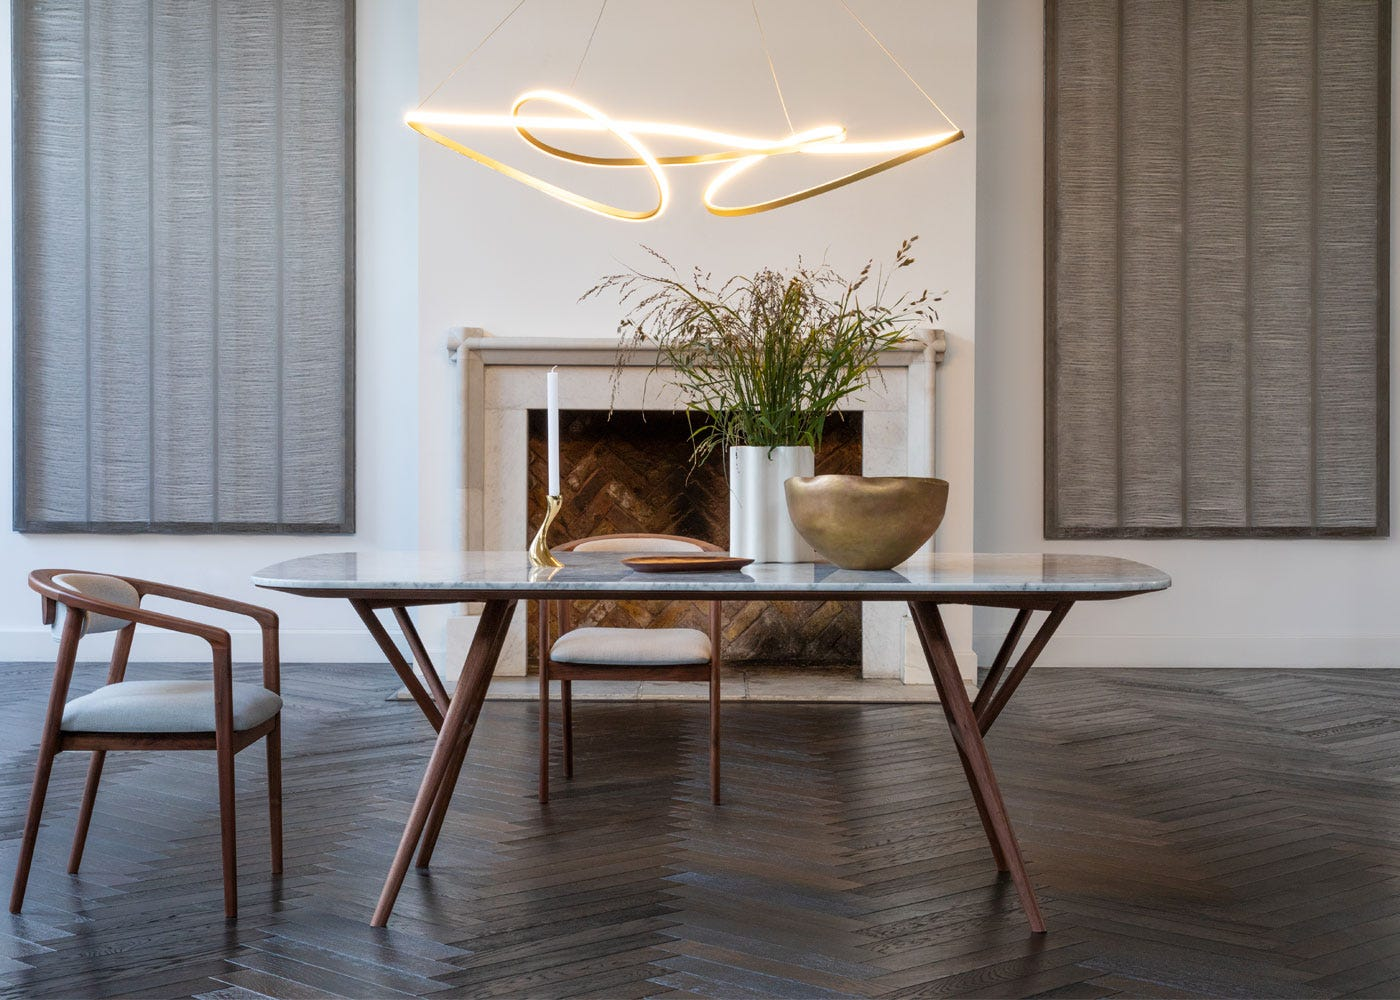 As shown: Anais dining chair & table, RIbbon LED Ceiling Pendant XL Satin Gold